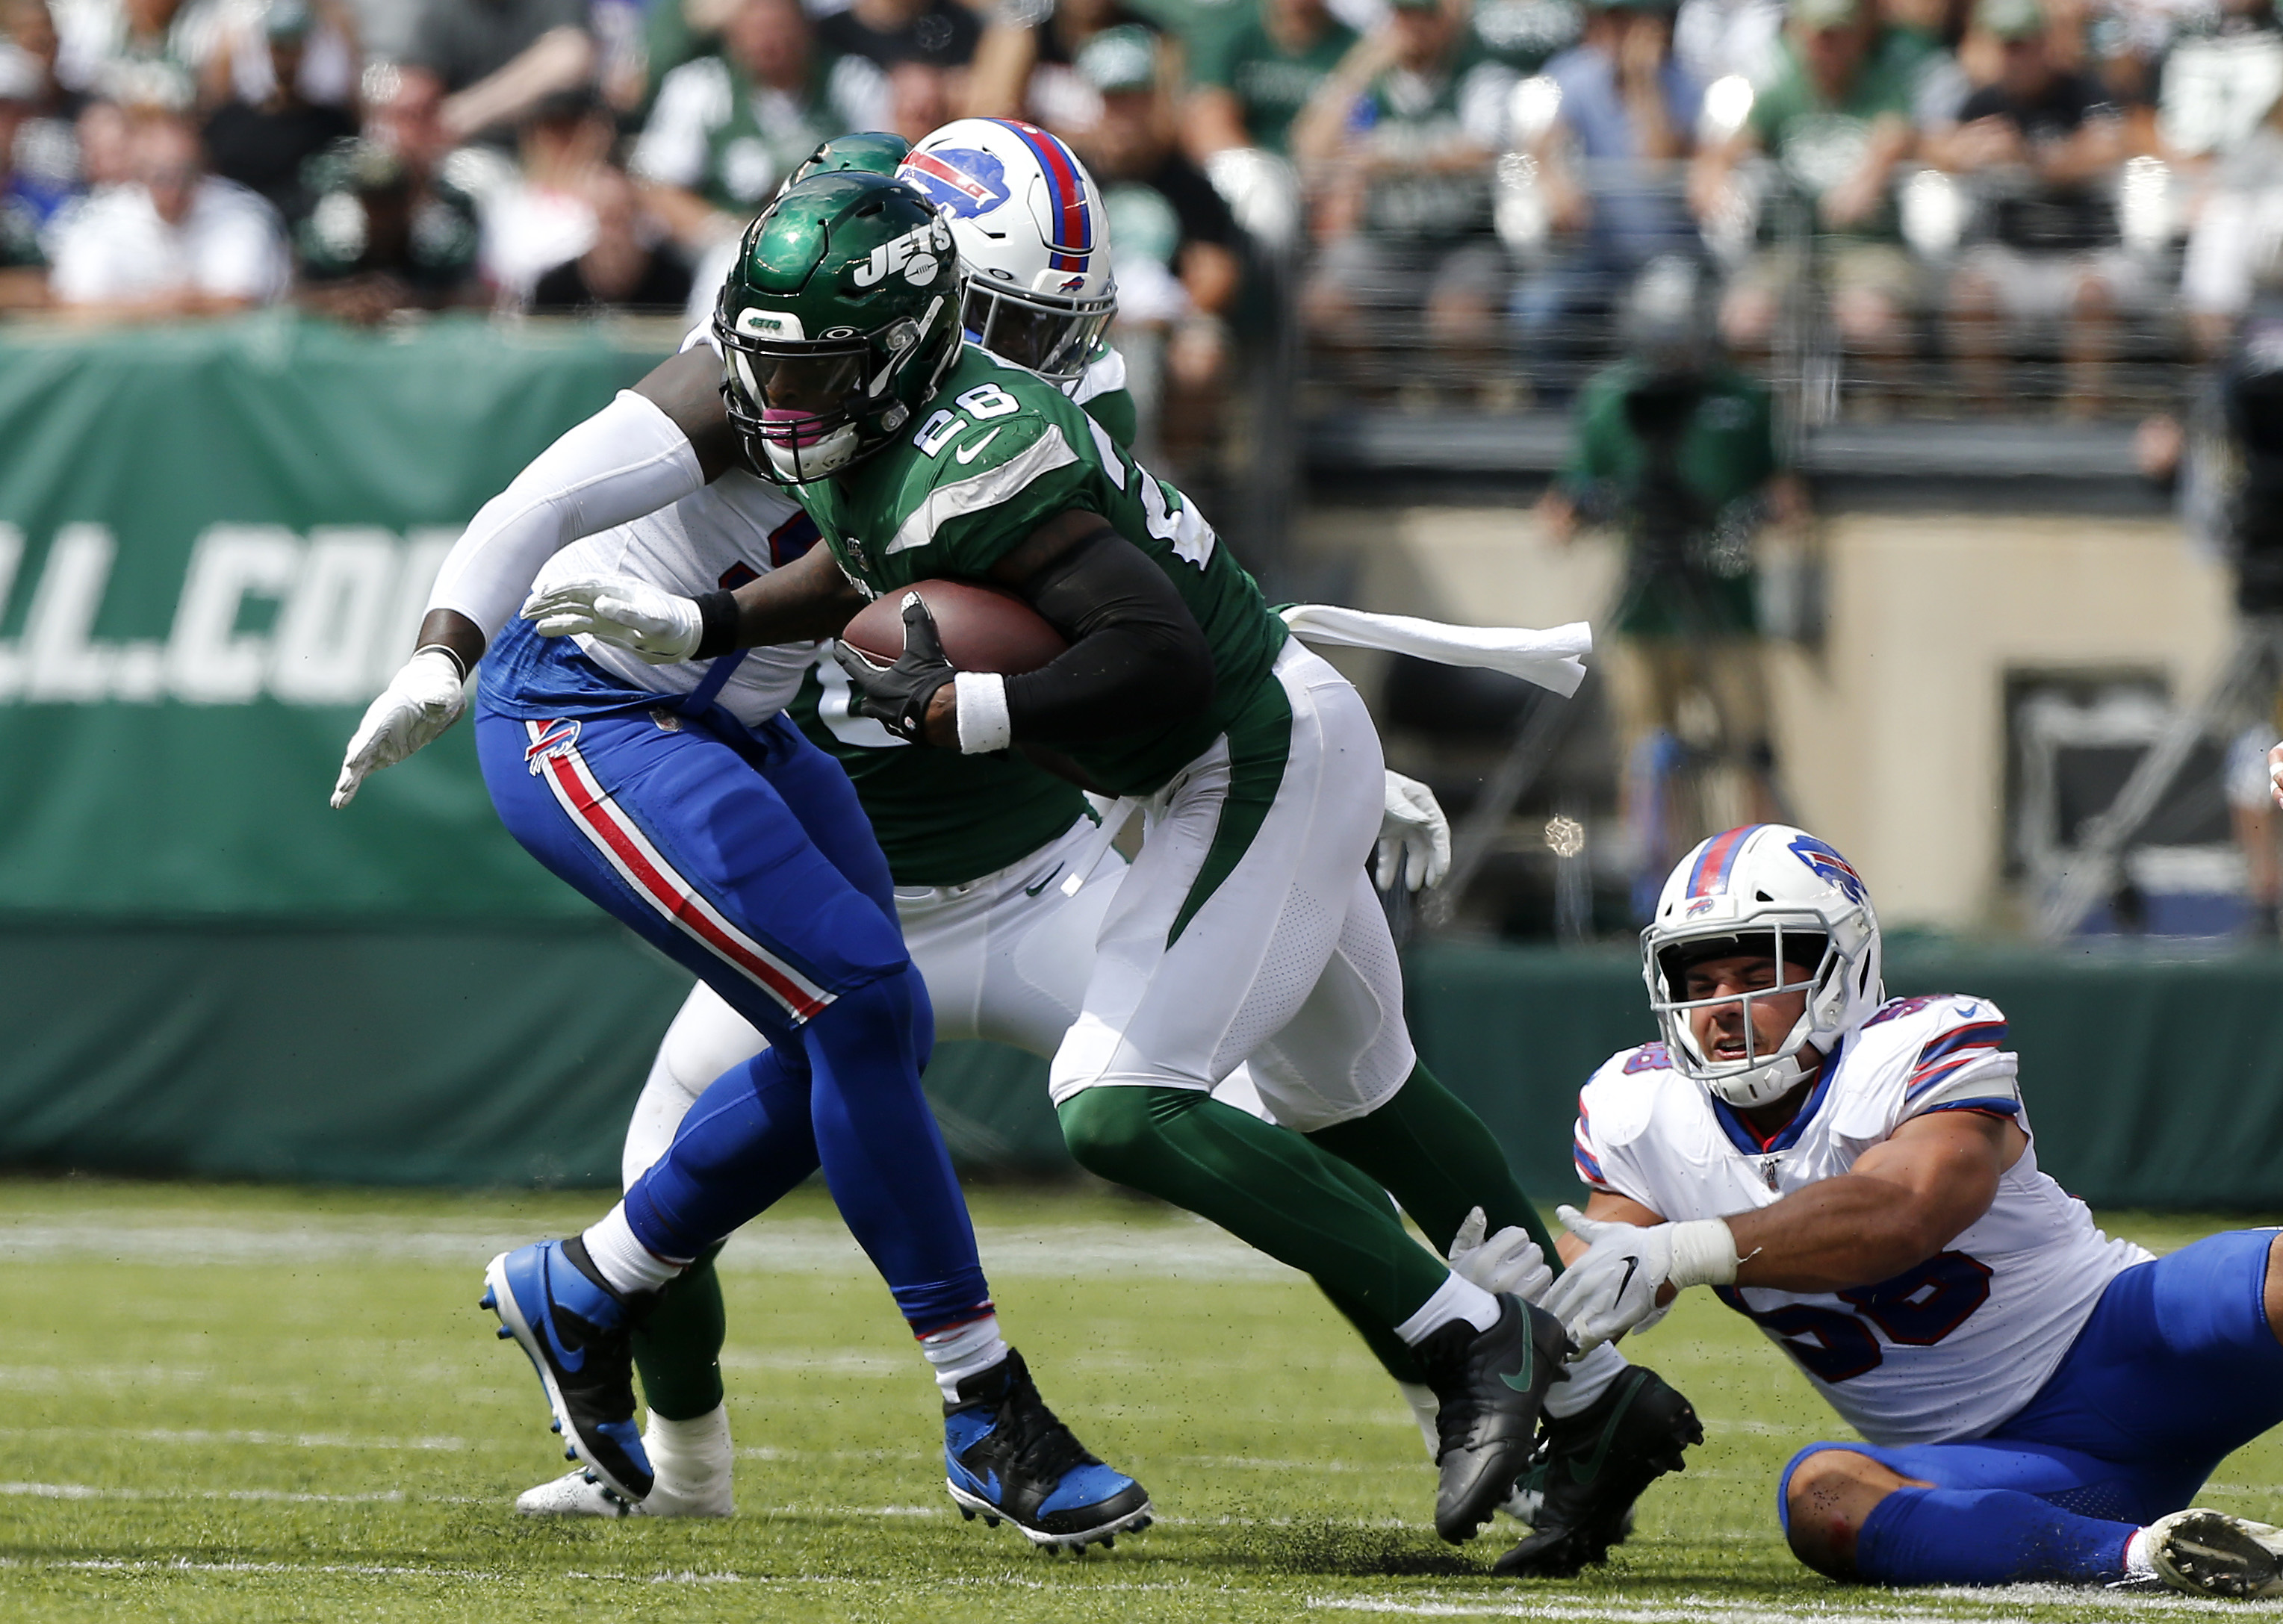 Le'Veon Bell of the New York Jets in action against the Buffalo Bills at MetLife Stadium on September 08, 2019 in East Rutherford, New Jersey.